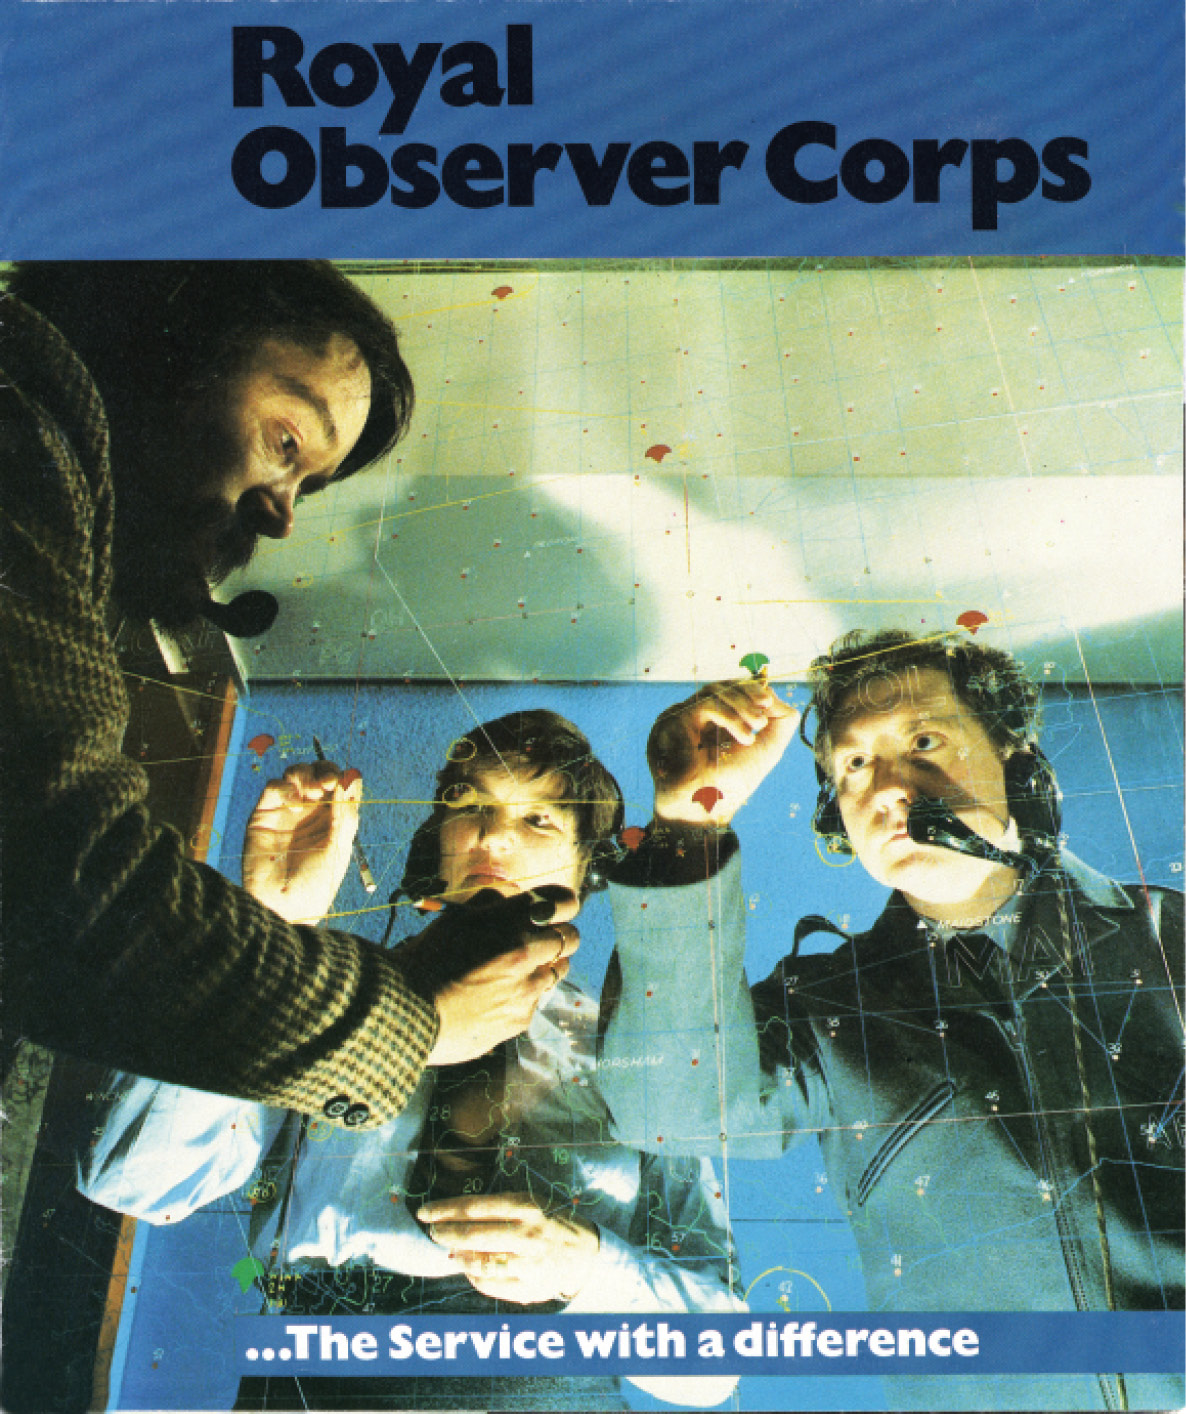 LEFT Motives for joining the Royal Observer Corps were diverse. This is the cover of a recruitment leaflet from 1983. BELOW The ROC recruited Observers of both sexes, and women rose to the highest levels within the organisation. This photograph shows a female Observer on visual reporting duties c.1950.